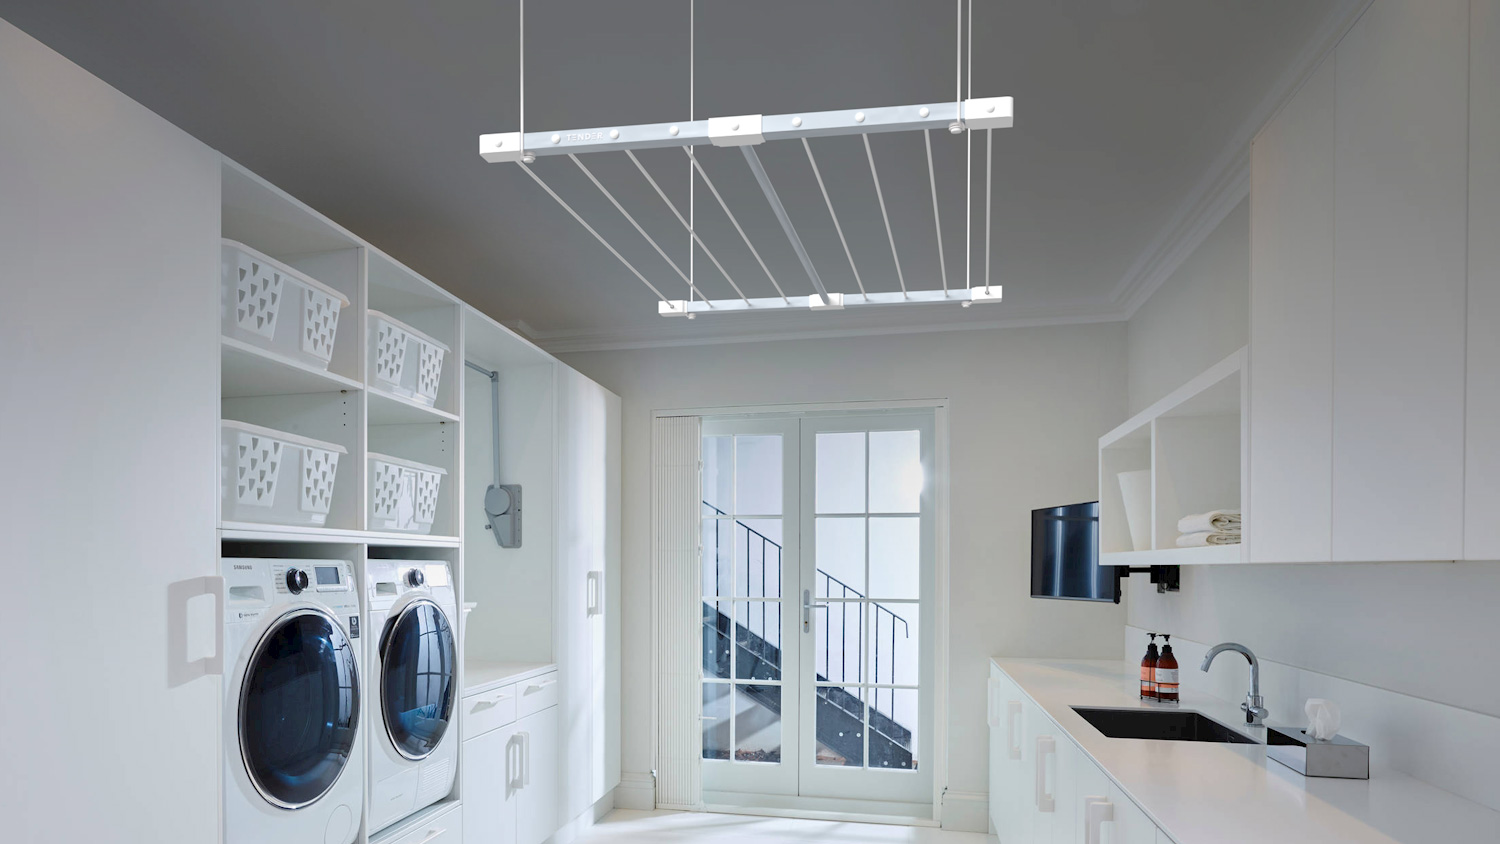 Laundry Room con Tender® Colgante